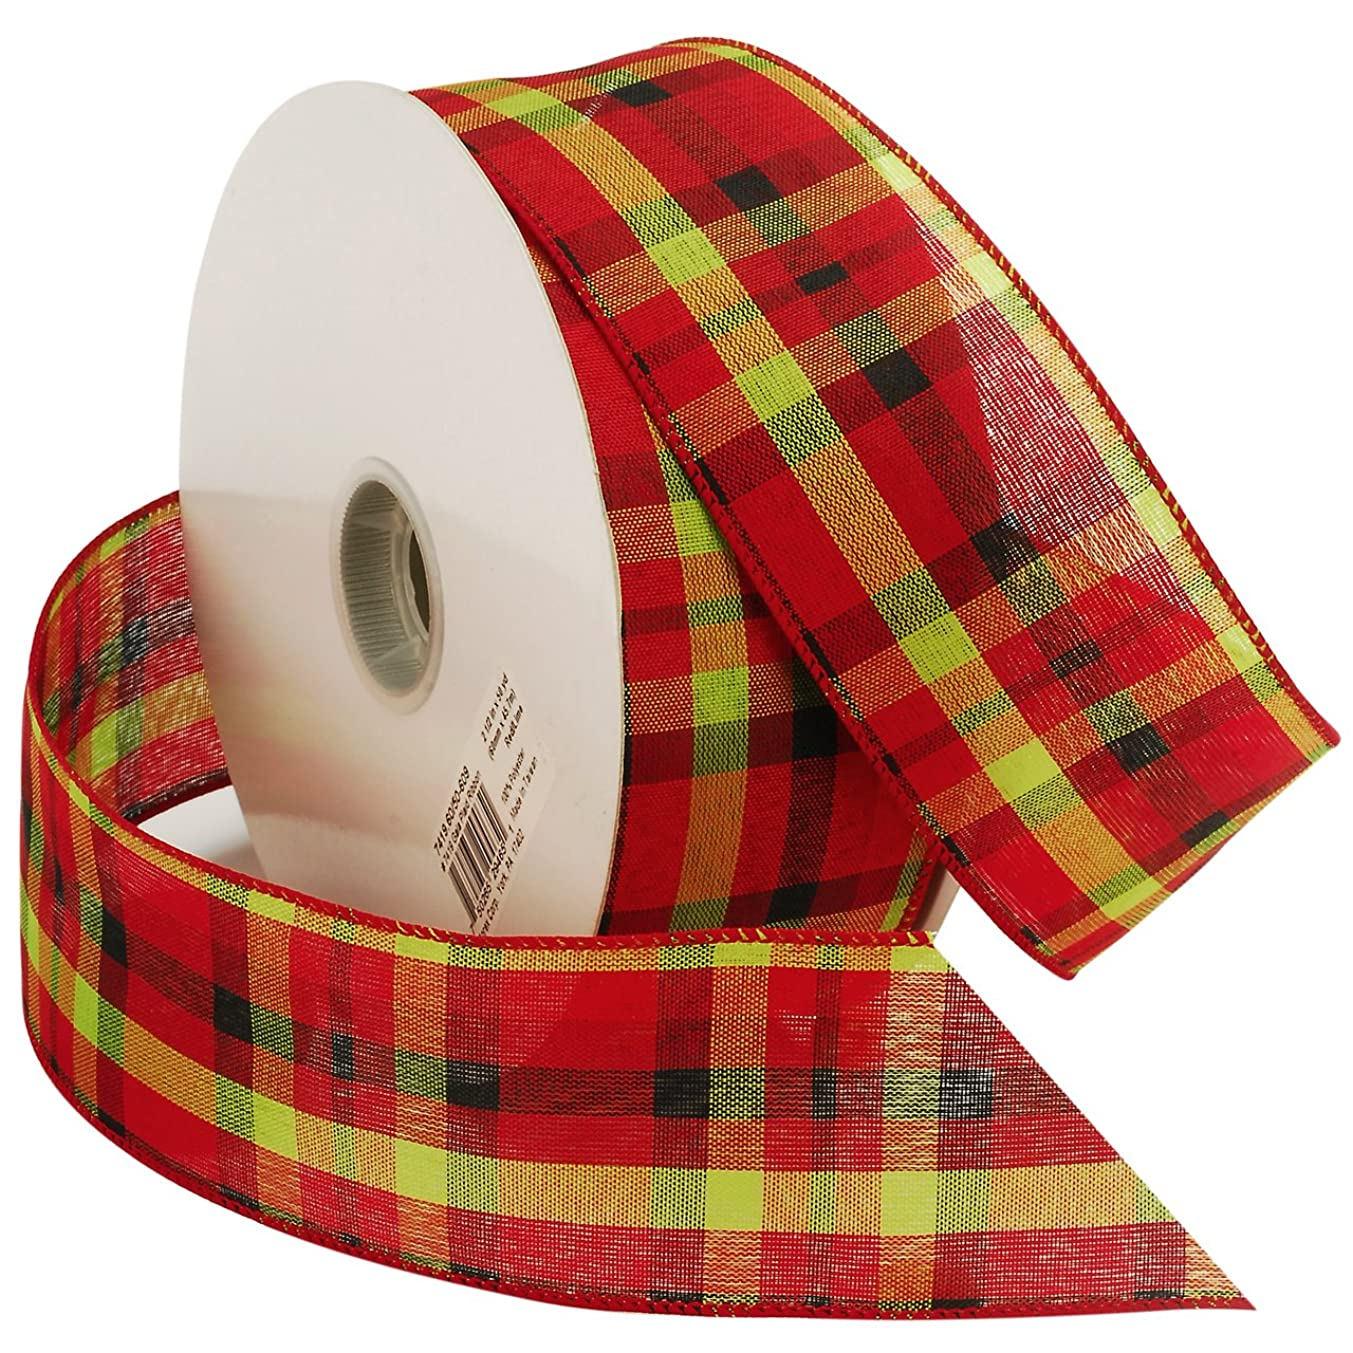 Morex Ribbon Gala Plaid Wired Fabric Ribbon, 2 1/2-Inch by 50-Yard Spool, Red/Lime